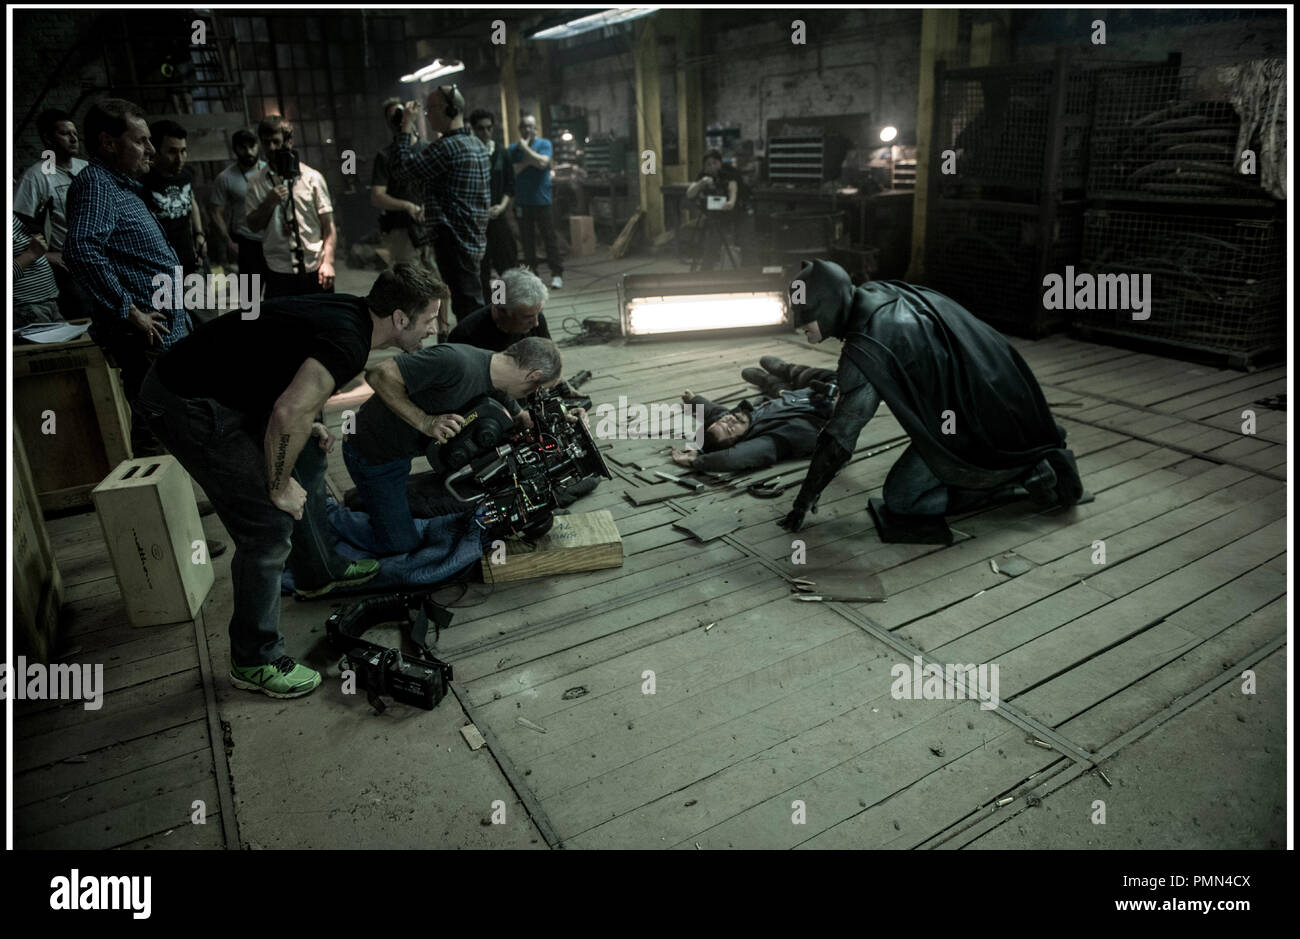 Prod DB © Warner Bros. - DC Entertainment - RatPac-Dune Entertainment - Syncopy / DR BATMAN V SUPERMAN: L'AUBE DE LA JUSTICE (BATMAN VS. SUPERMAN: DAWN OF JUSTICE) de Zack Snyder 2016 USA avec Zack Snyder et Ben Affleck sur le tournage - Stock Image